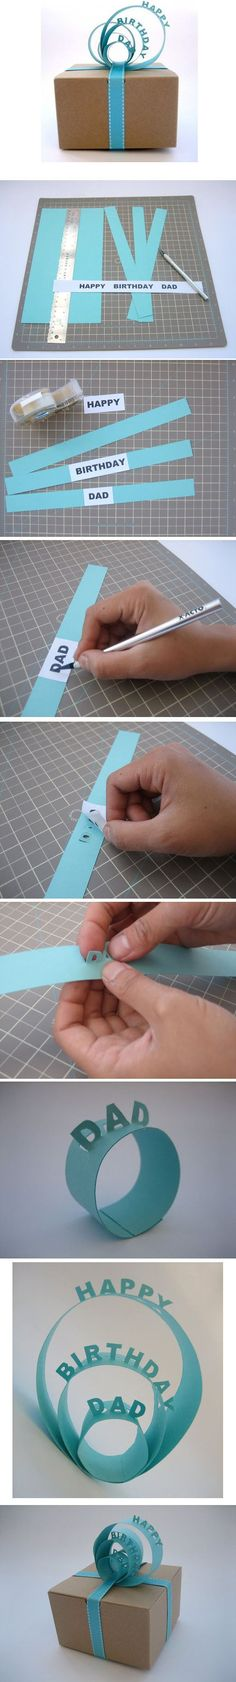 DIY Paper Gift Topper | DIY Creative Ideas